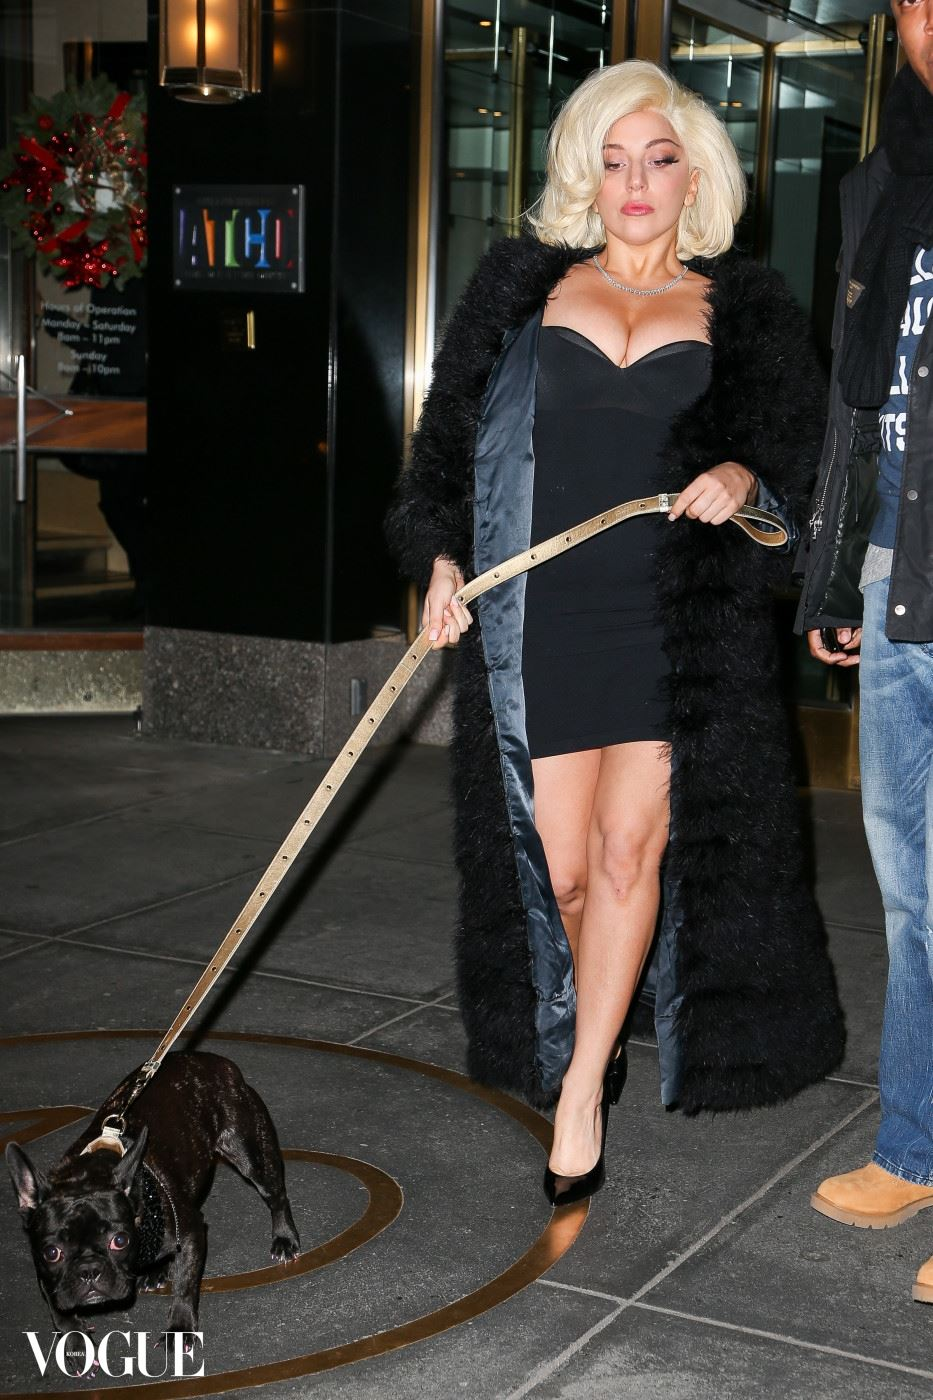 Lady Gaga heads out for dinner with her dog Asia in New York City. Pictured: Lady Gaga Ref: SPL915276  191214   Picture by: Santi/Splash News Splash News and Pictures Los Angeles:310-821-2666 New York:212-619-2666 London:870-934-2666 photodesk@splashnews.com